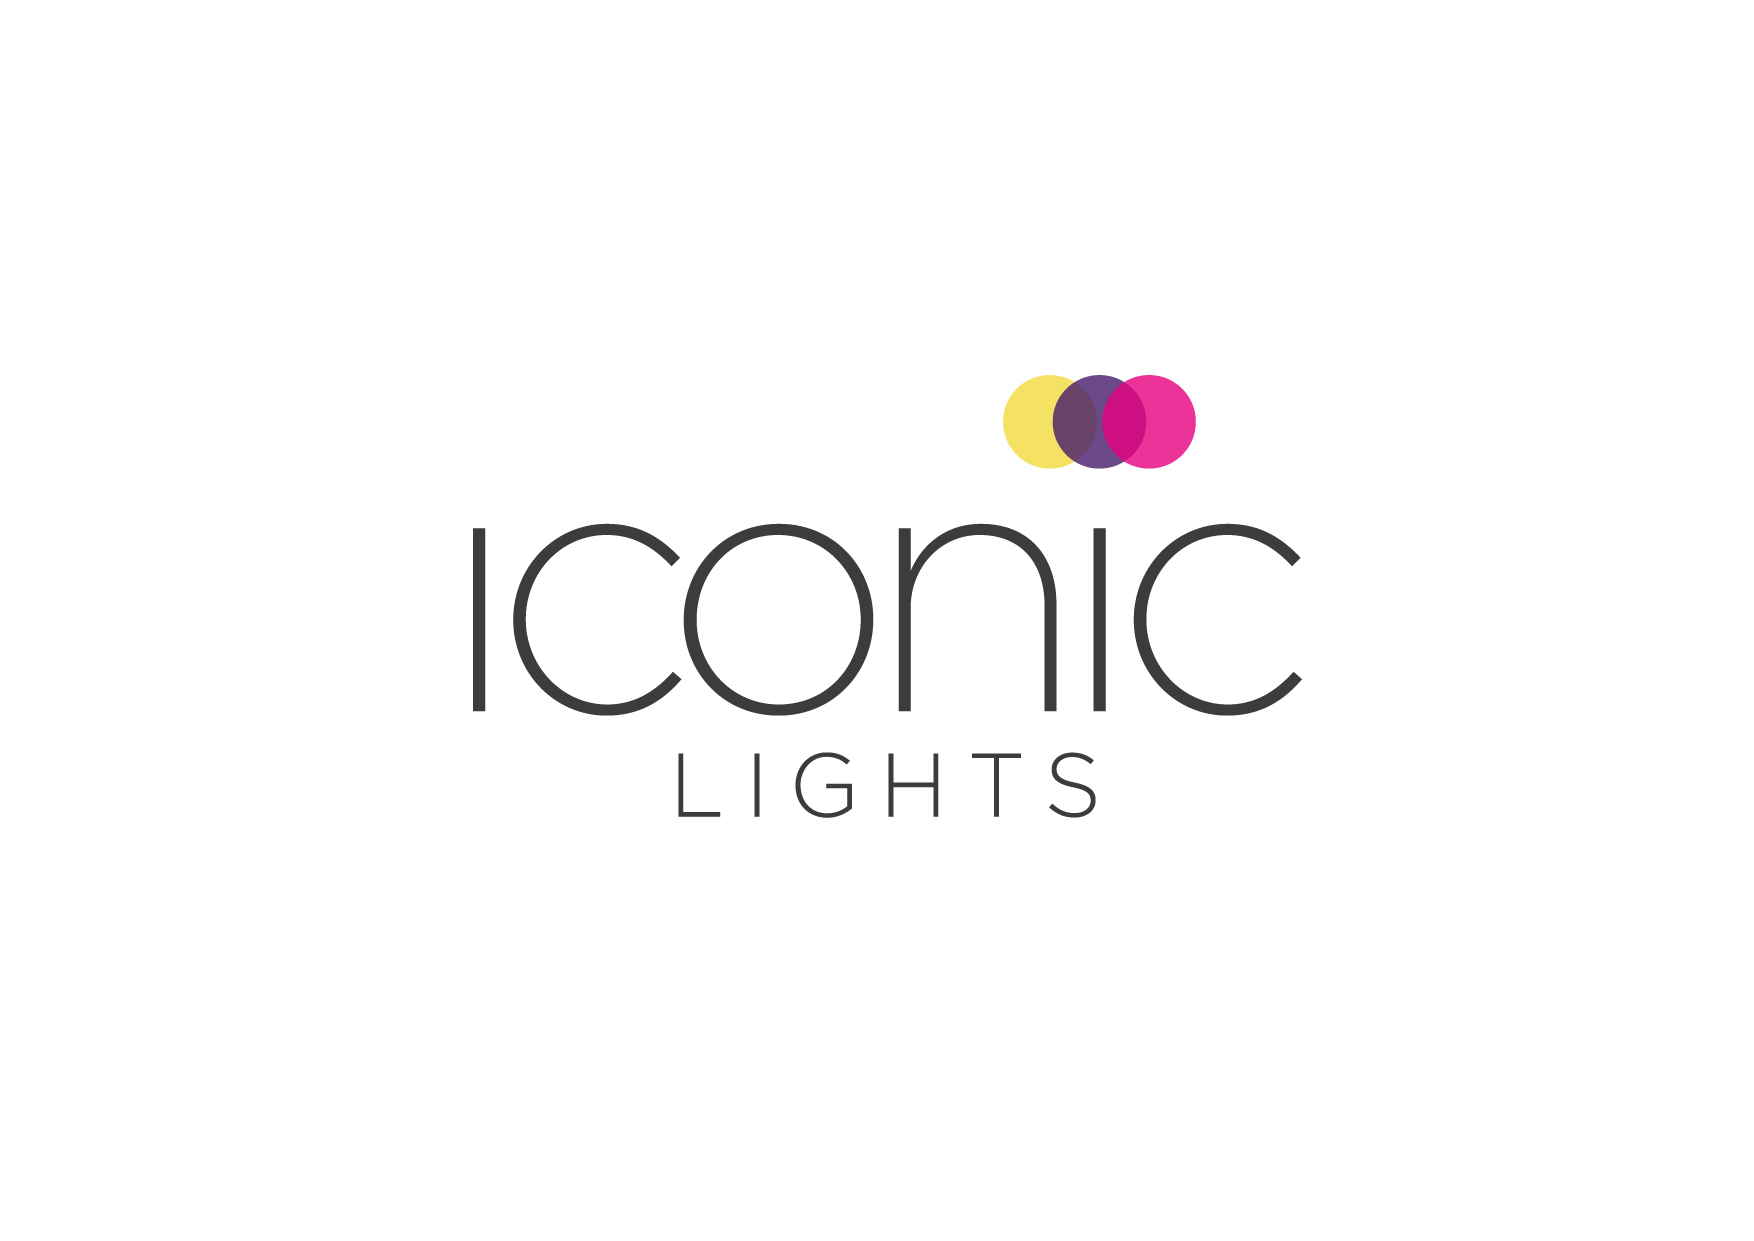 Read Iconiclights Reviews